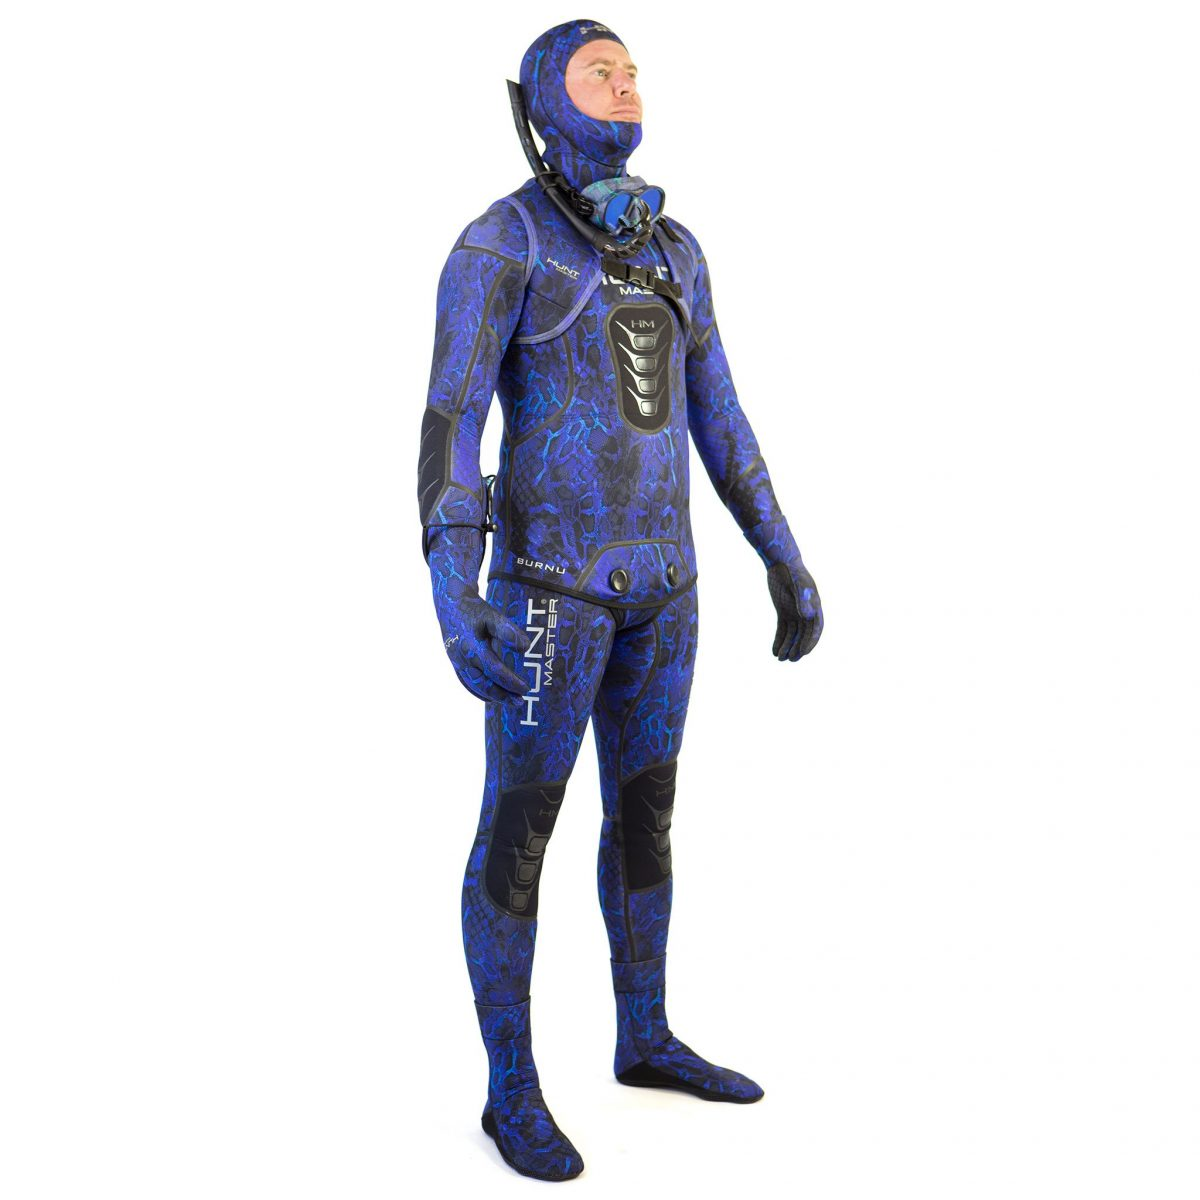 Hunstman Wetsuit Blue Camo 3.5mm- 2 Piece - Long John Pant & Hooded Top